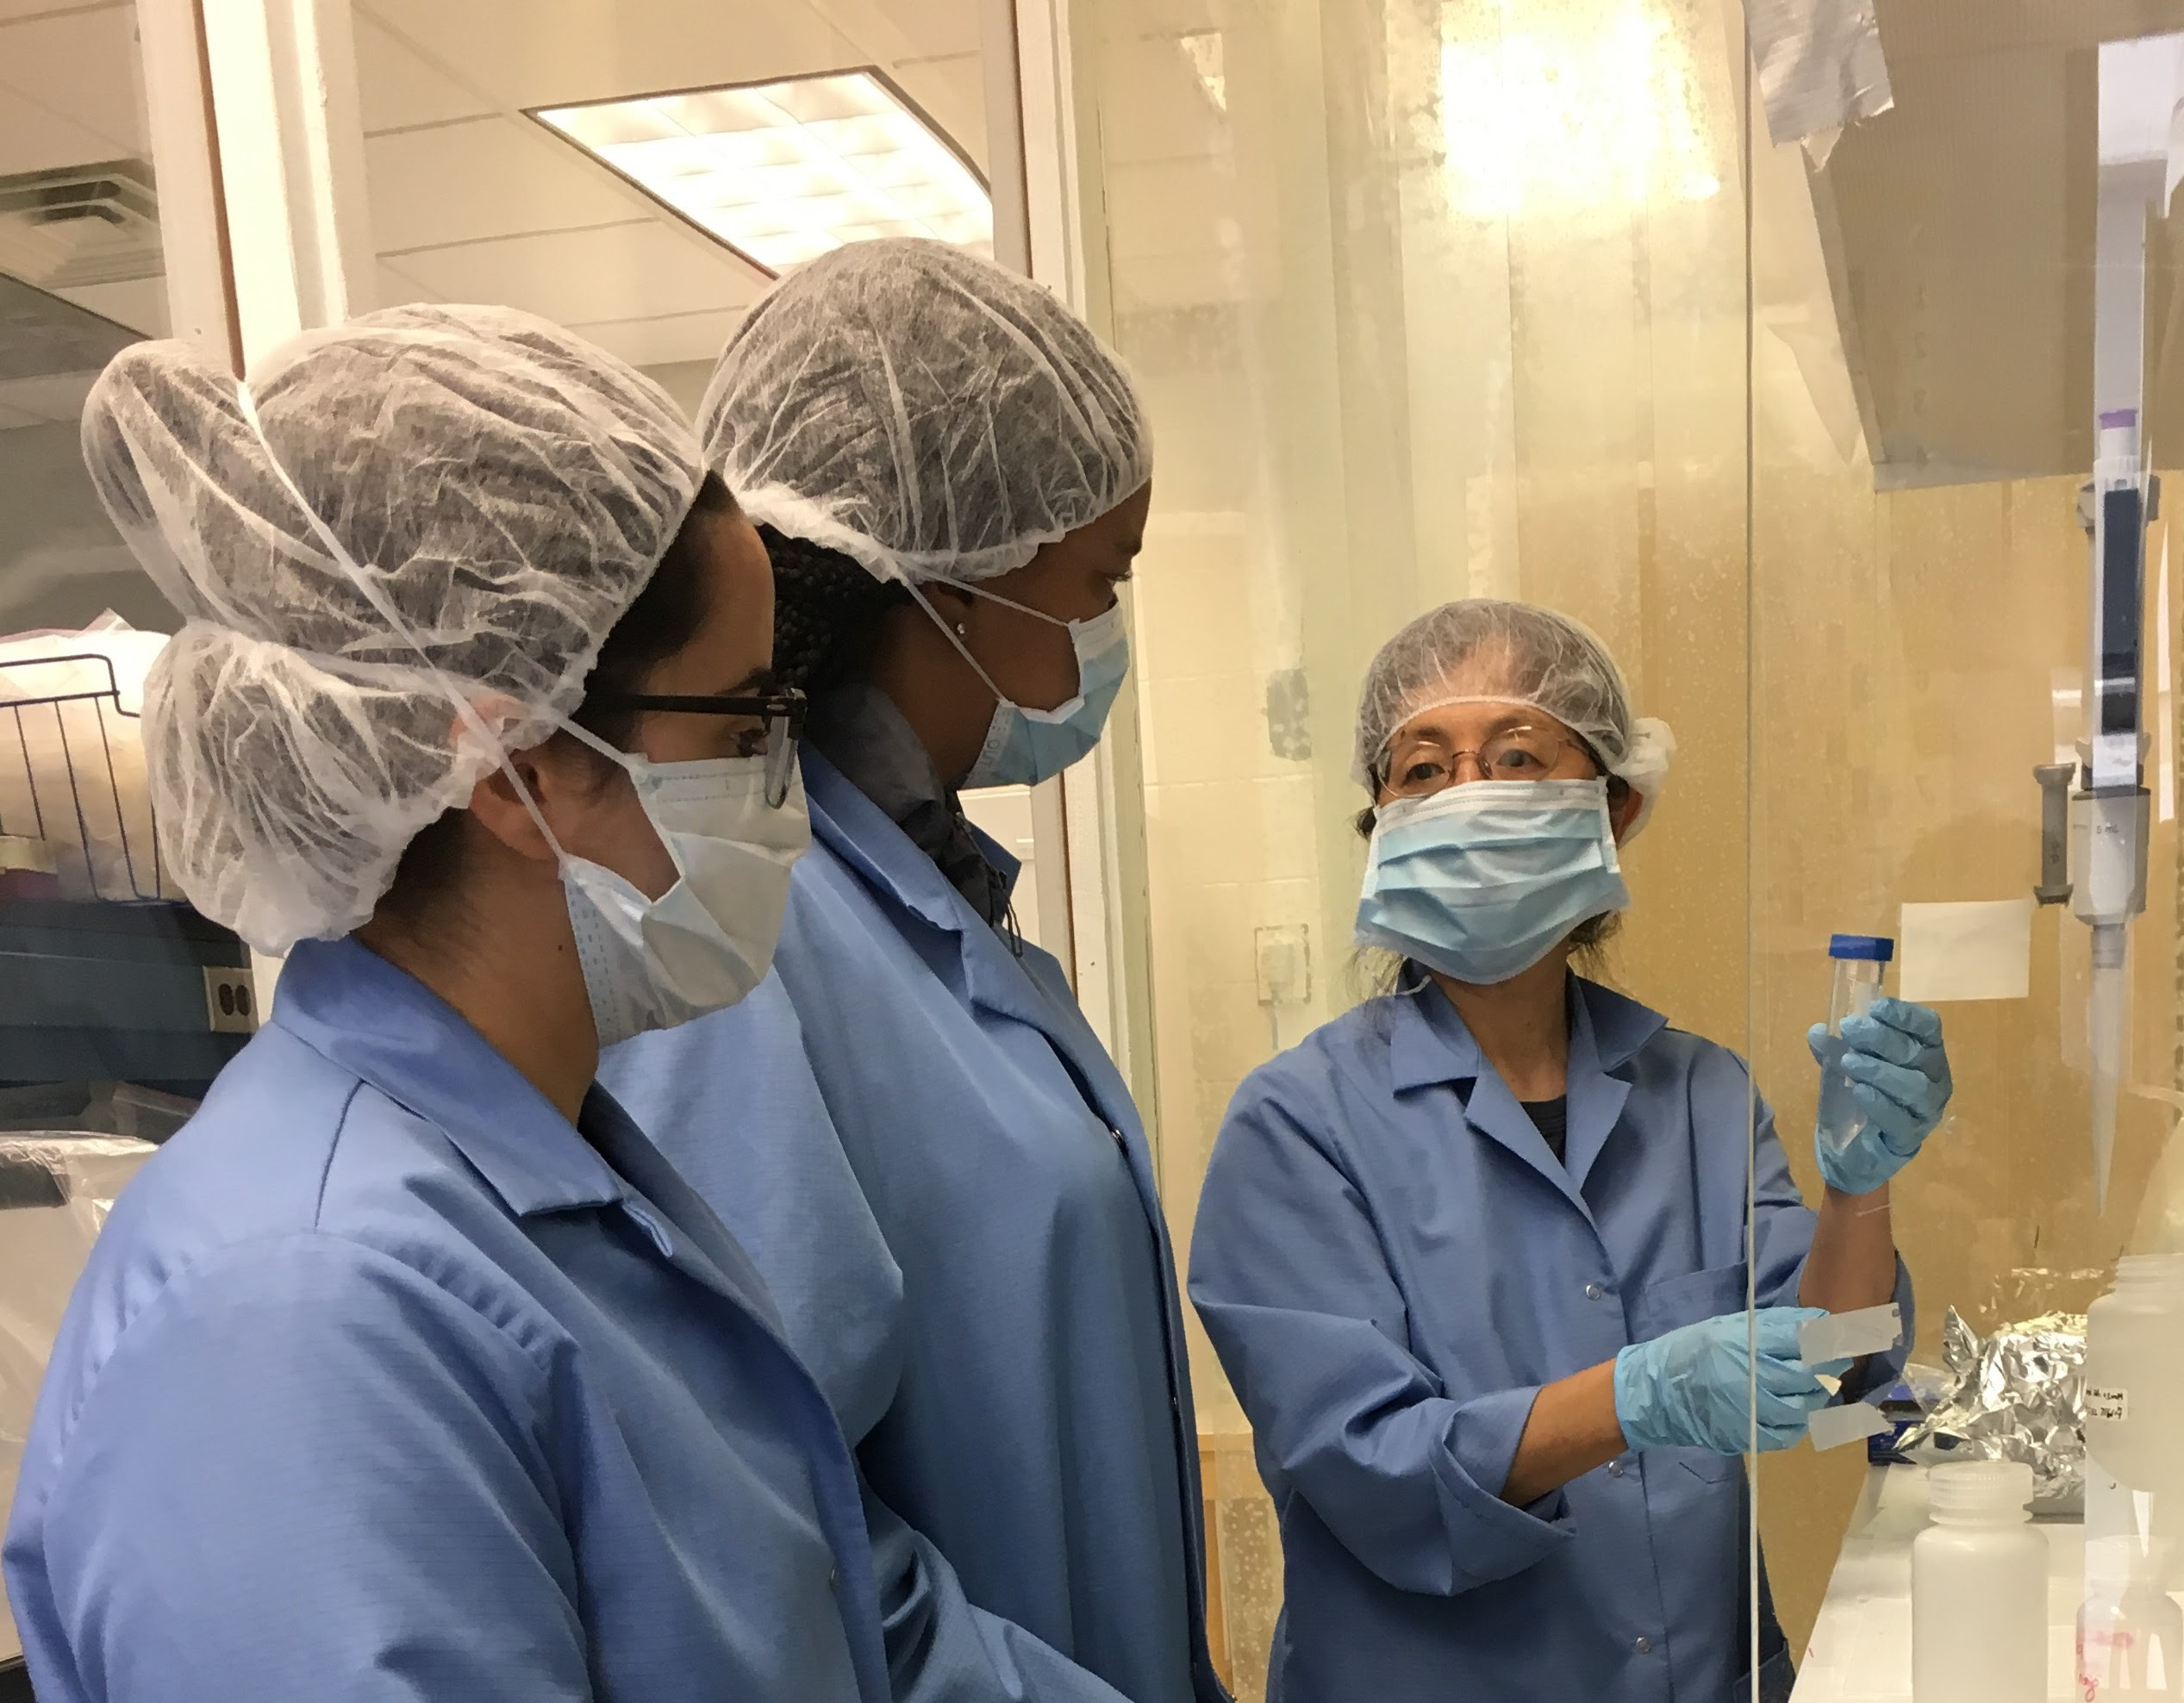 Dr. Gao shows undergraduate students procedures in the Gao Lab cleanroom